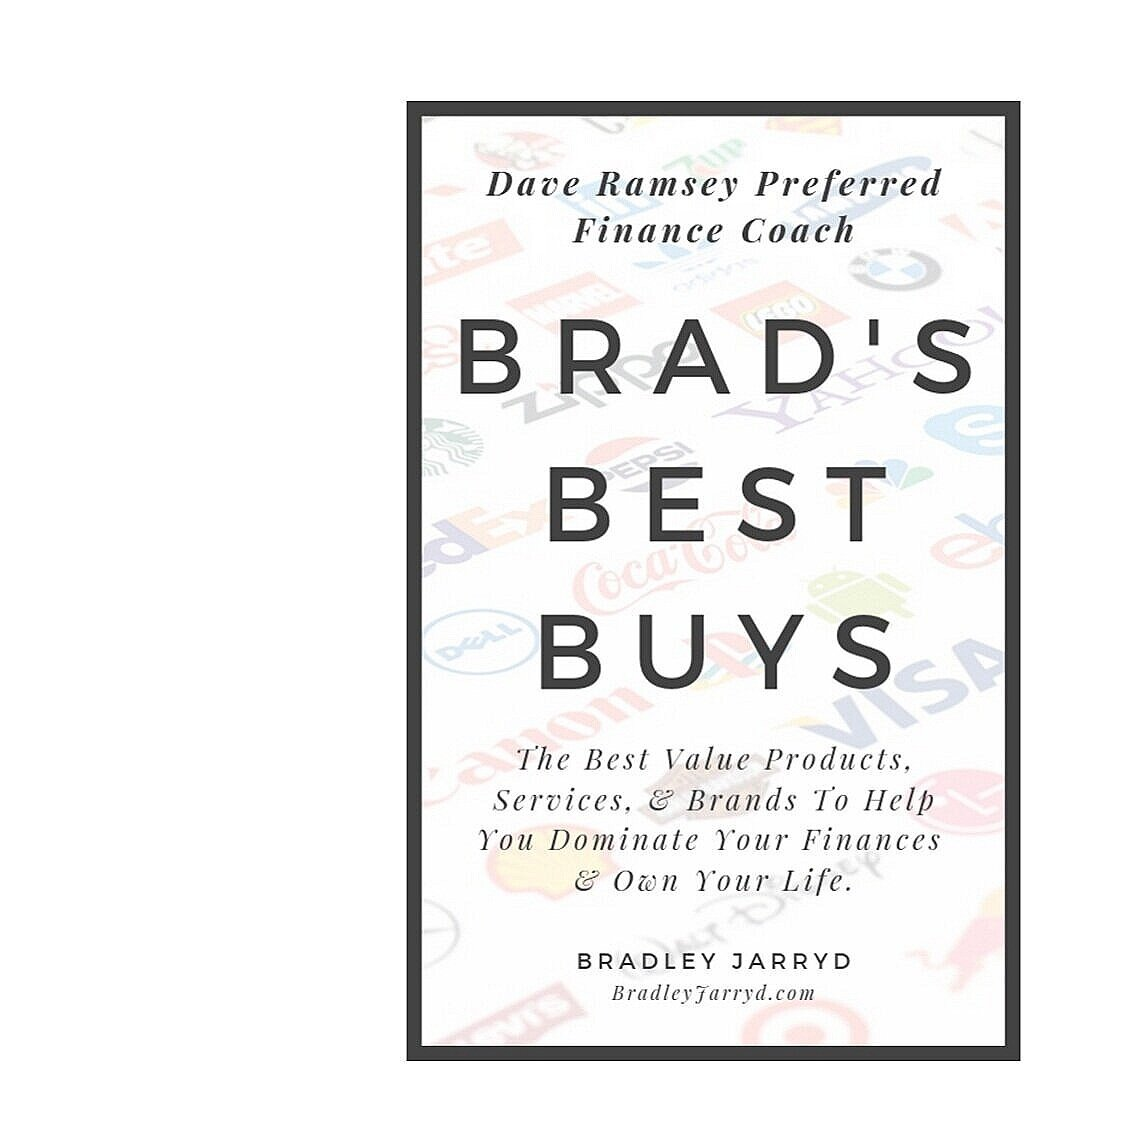 Are you ready to start building your future instead of hindering it? - Download your own FREE copy of Brad's Best Buys and discover the best products, services, and brands that will put you on the track to financial freedom and the philosophy why they have helped me and my clients reach our goals.